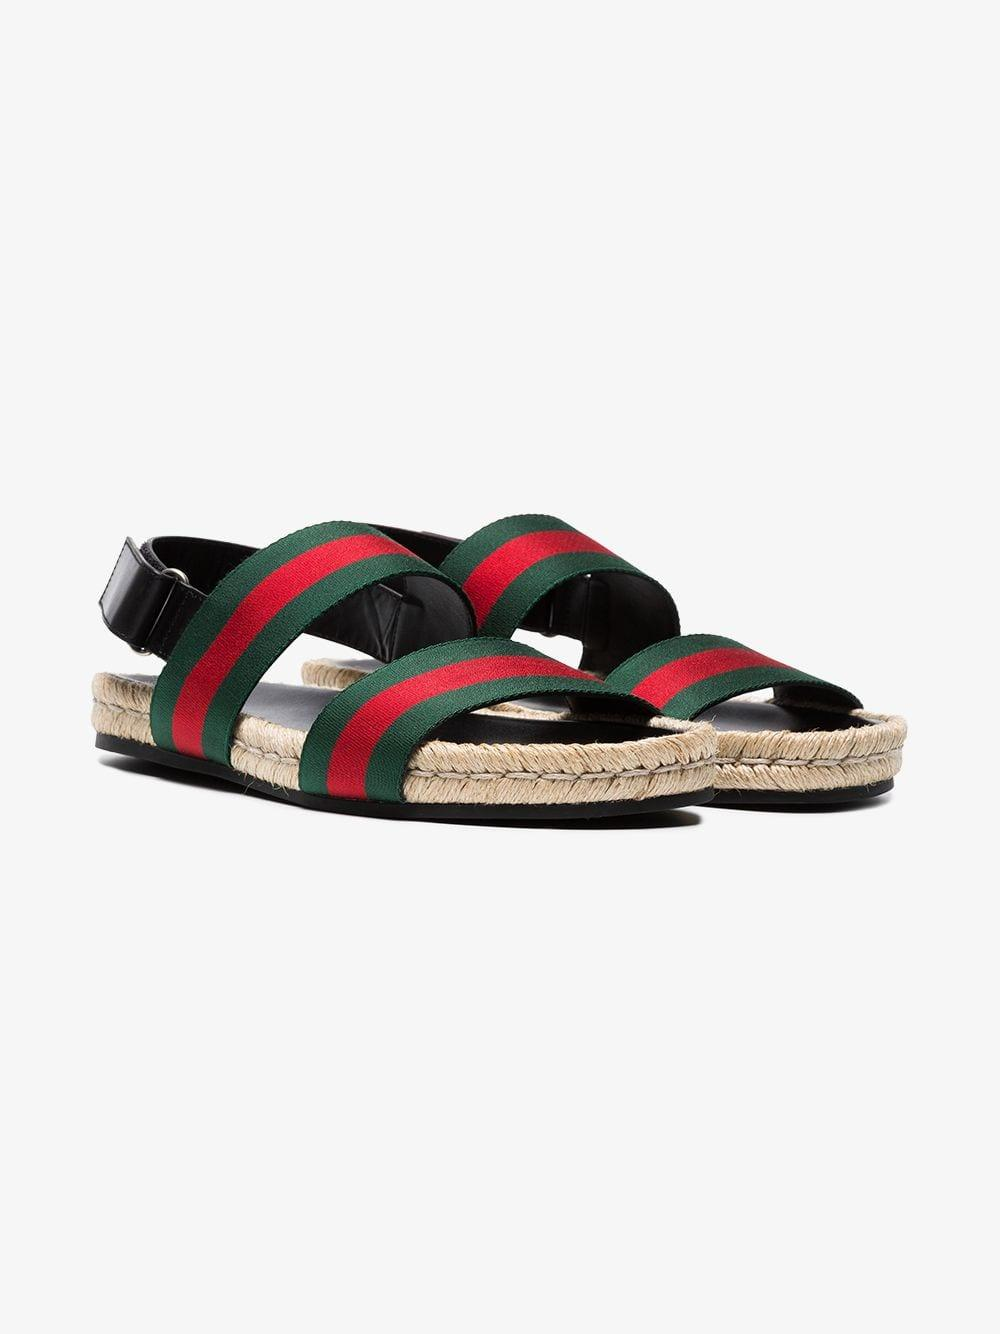 14bc100b090 Lyst - Gucci Green And Red Web Sandals in Green for Men